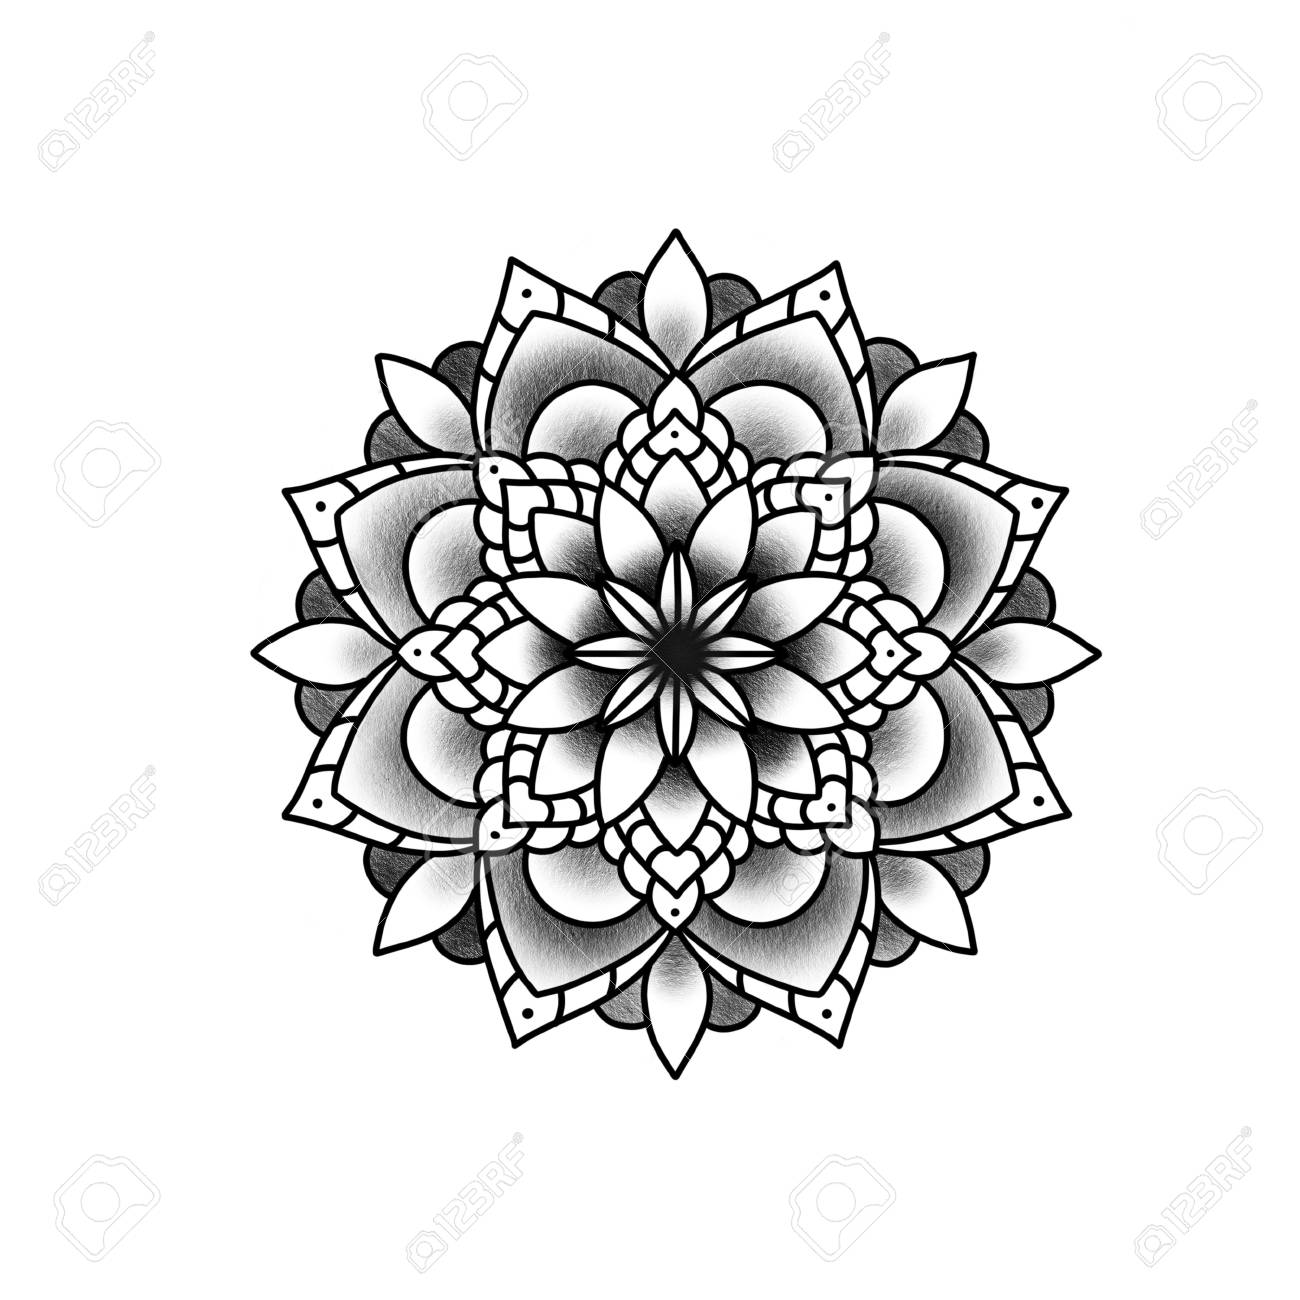 Flower mandala. Vintage decorative element. Islam, Arabic, Indian, ottoman motifs. Banque d'images - 84371934